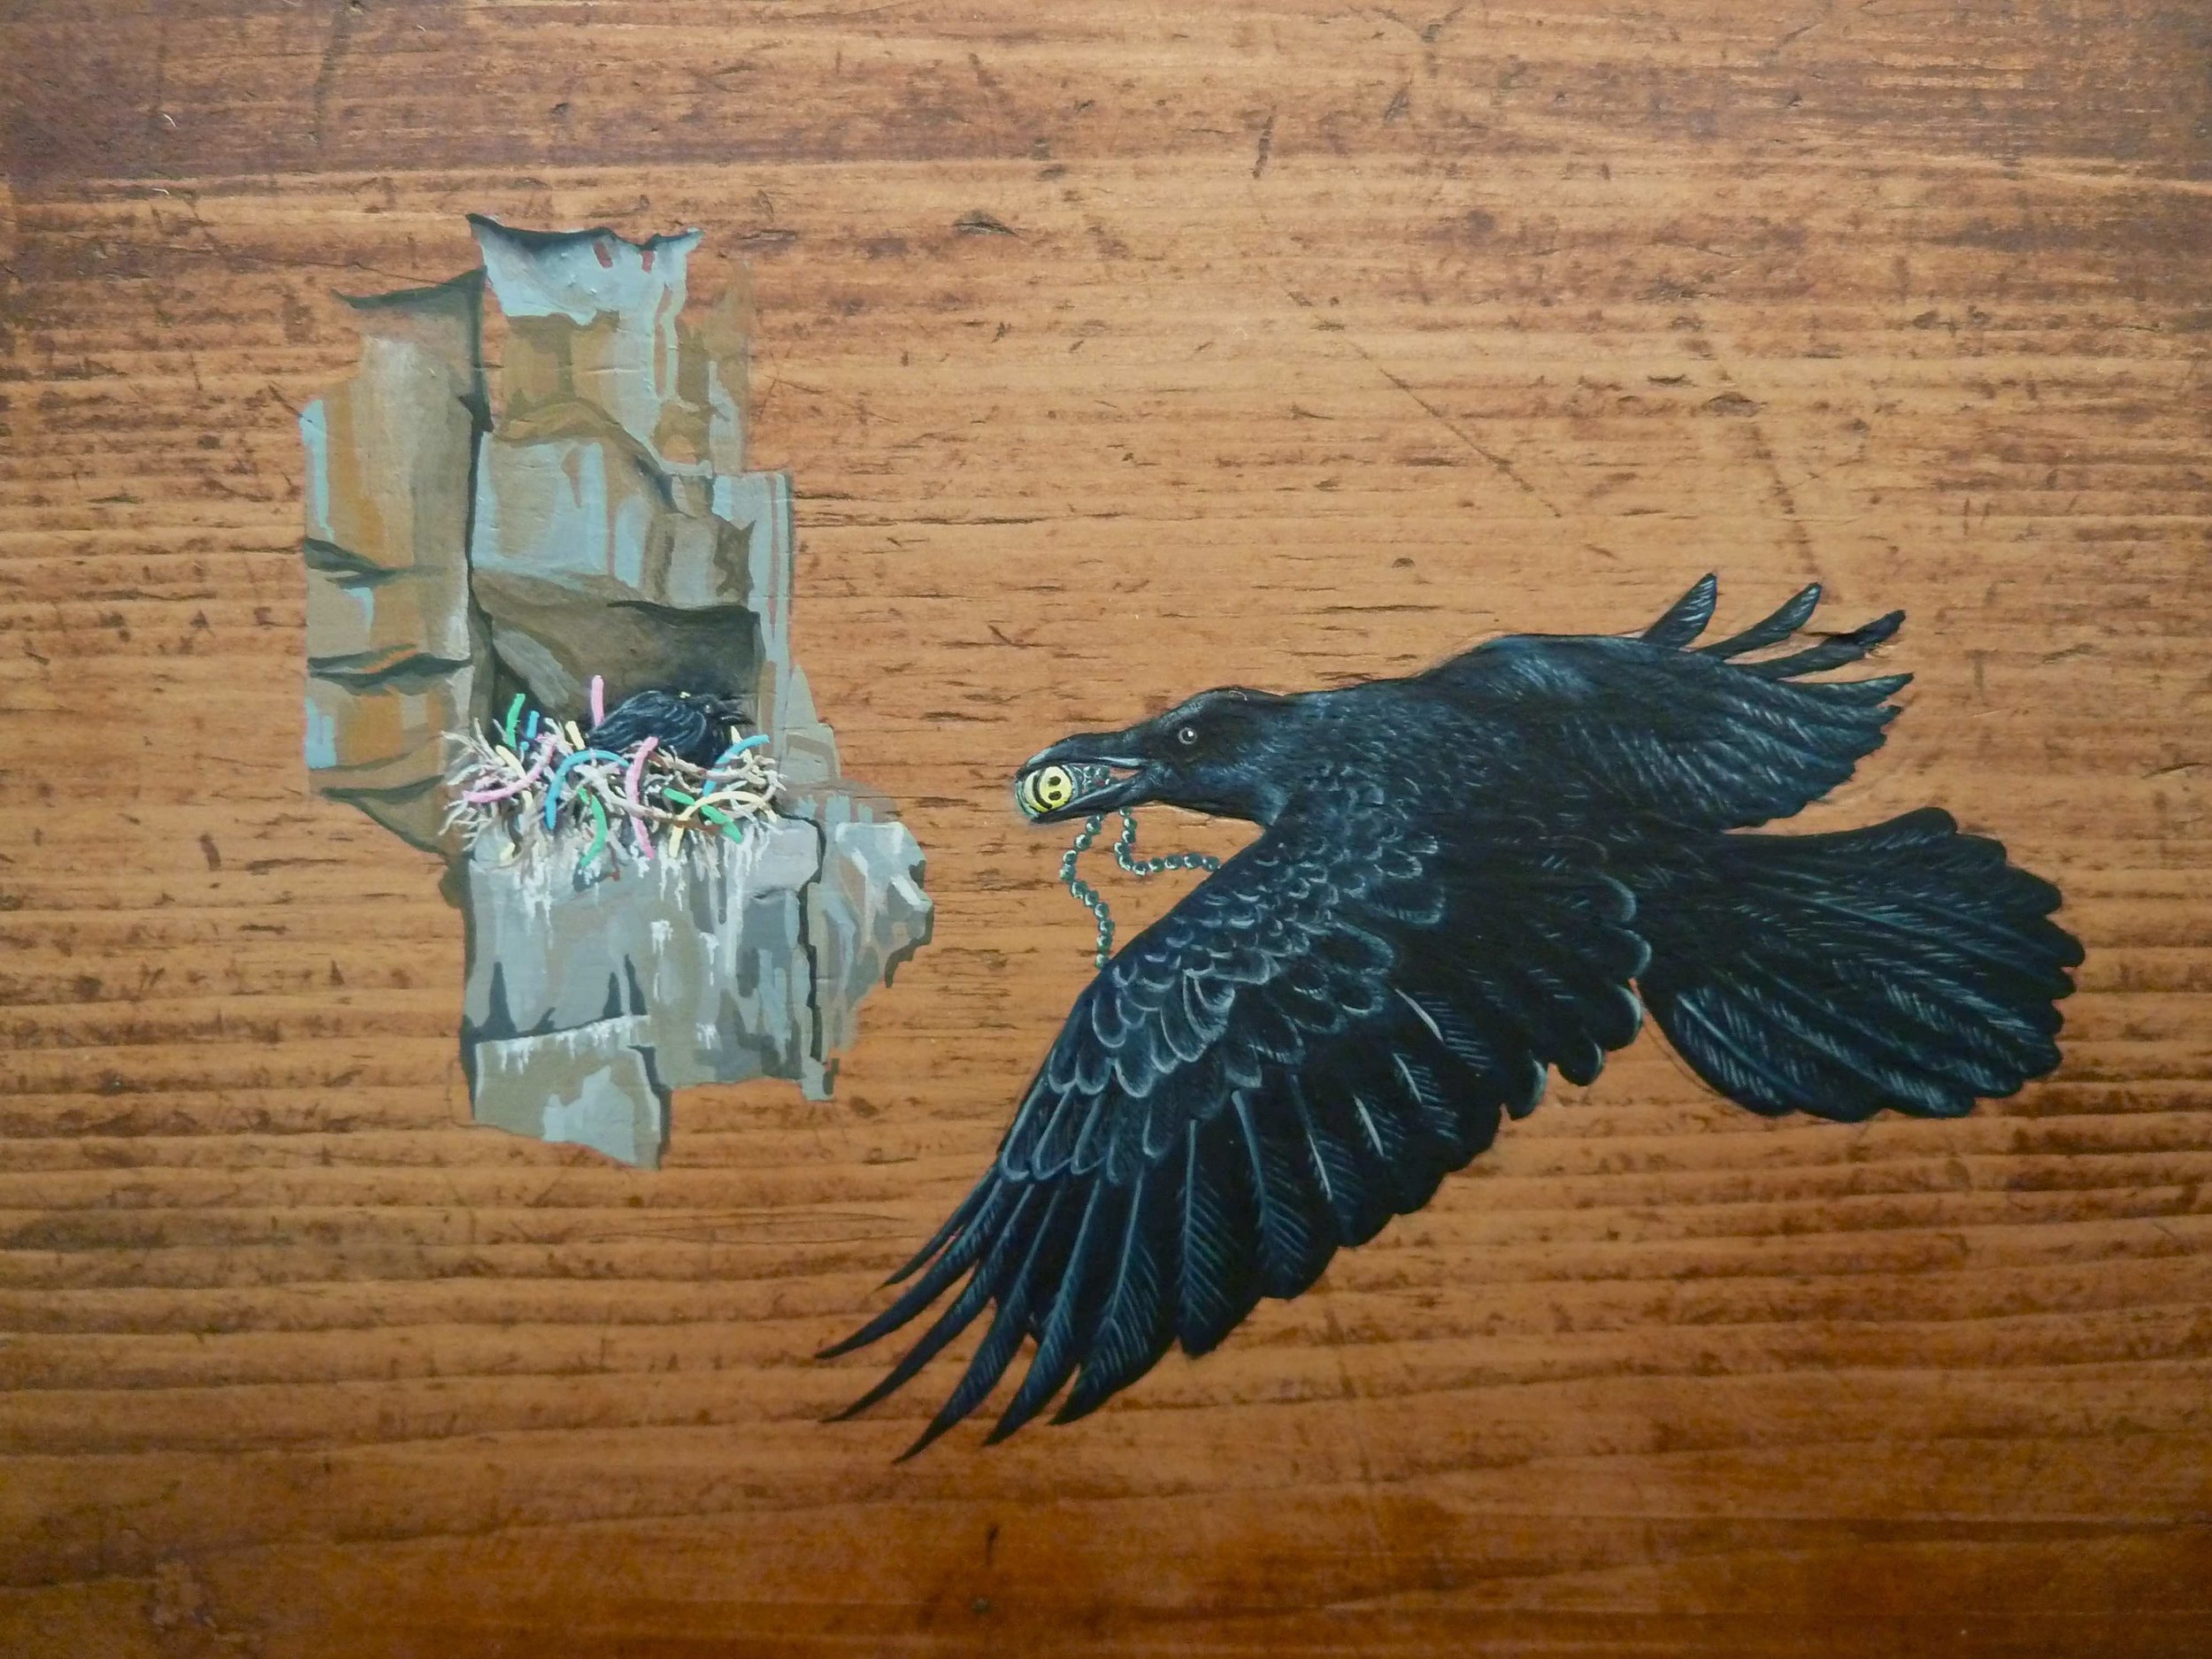 Raven  Corvus corax  (gouache on wood), 2010.  Something tells me it's all happening at the Zoo  , Kevin Kavanagh Gallery